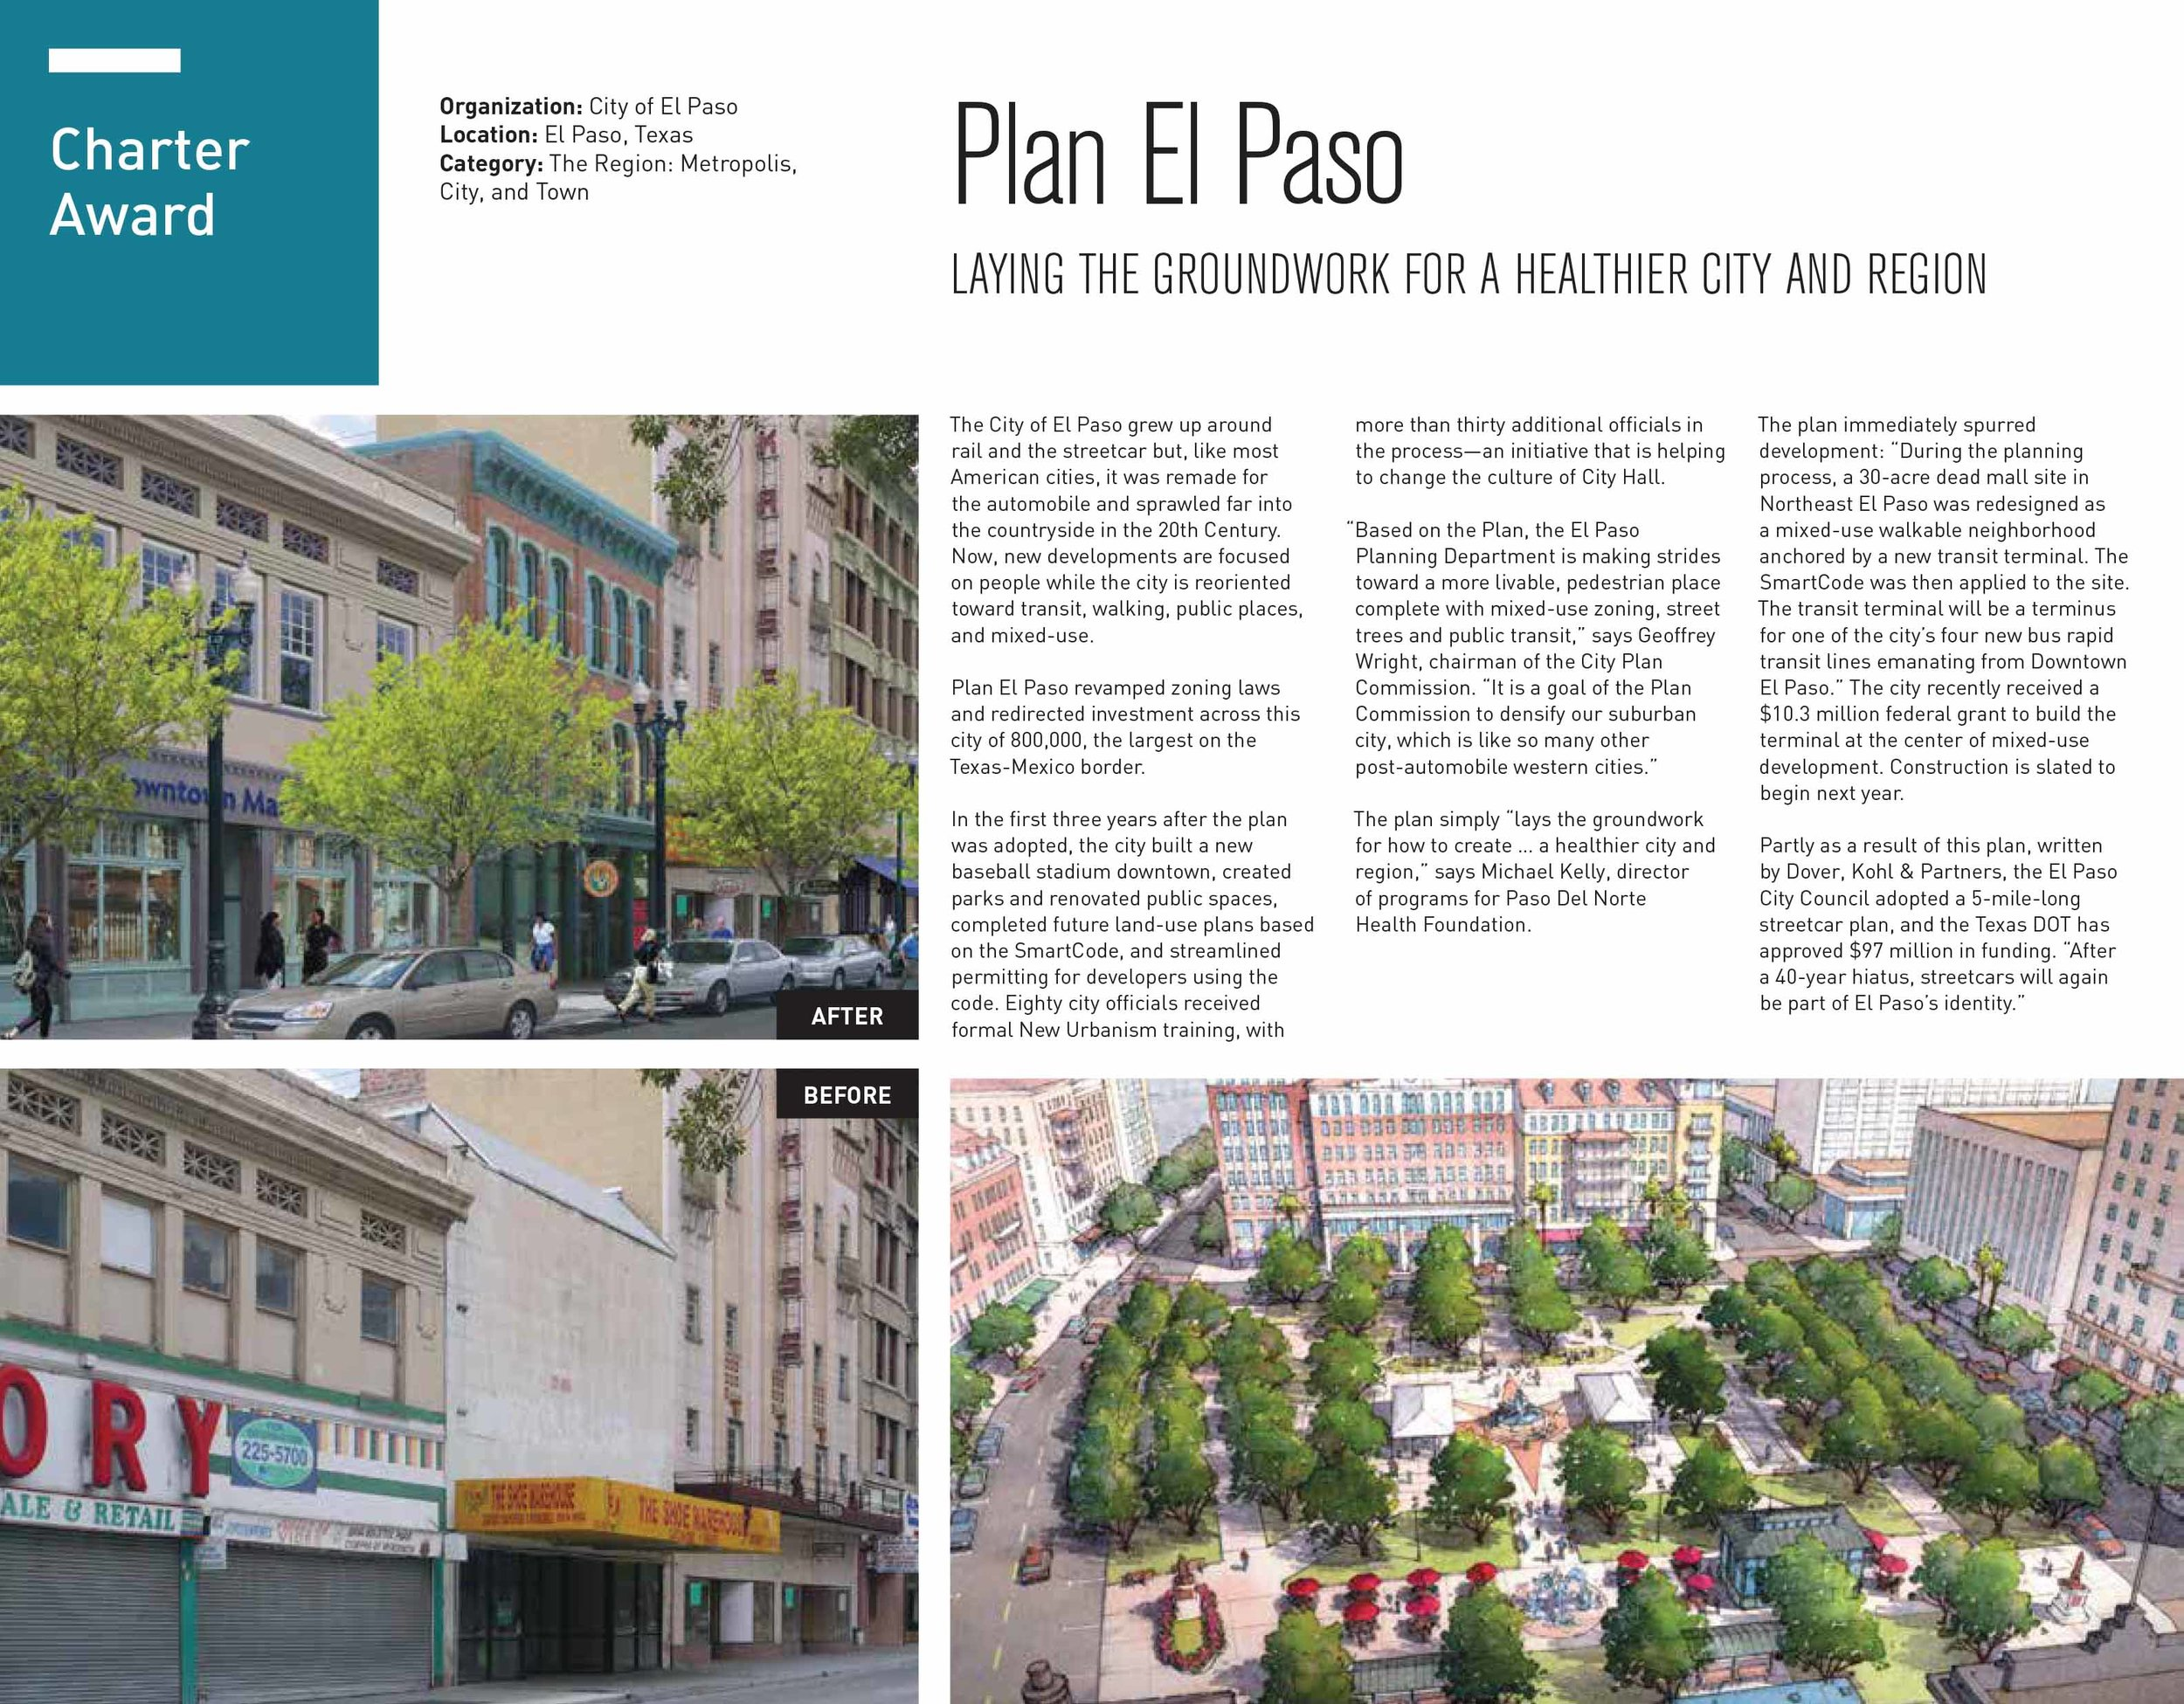 2015-Charter Award of Excellence for Plan El Paso on the Region Metropolis, City, Town Scale.jpg